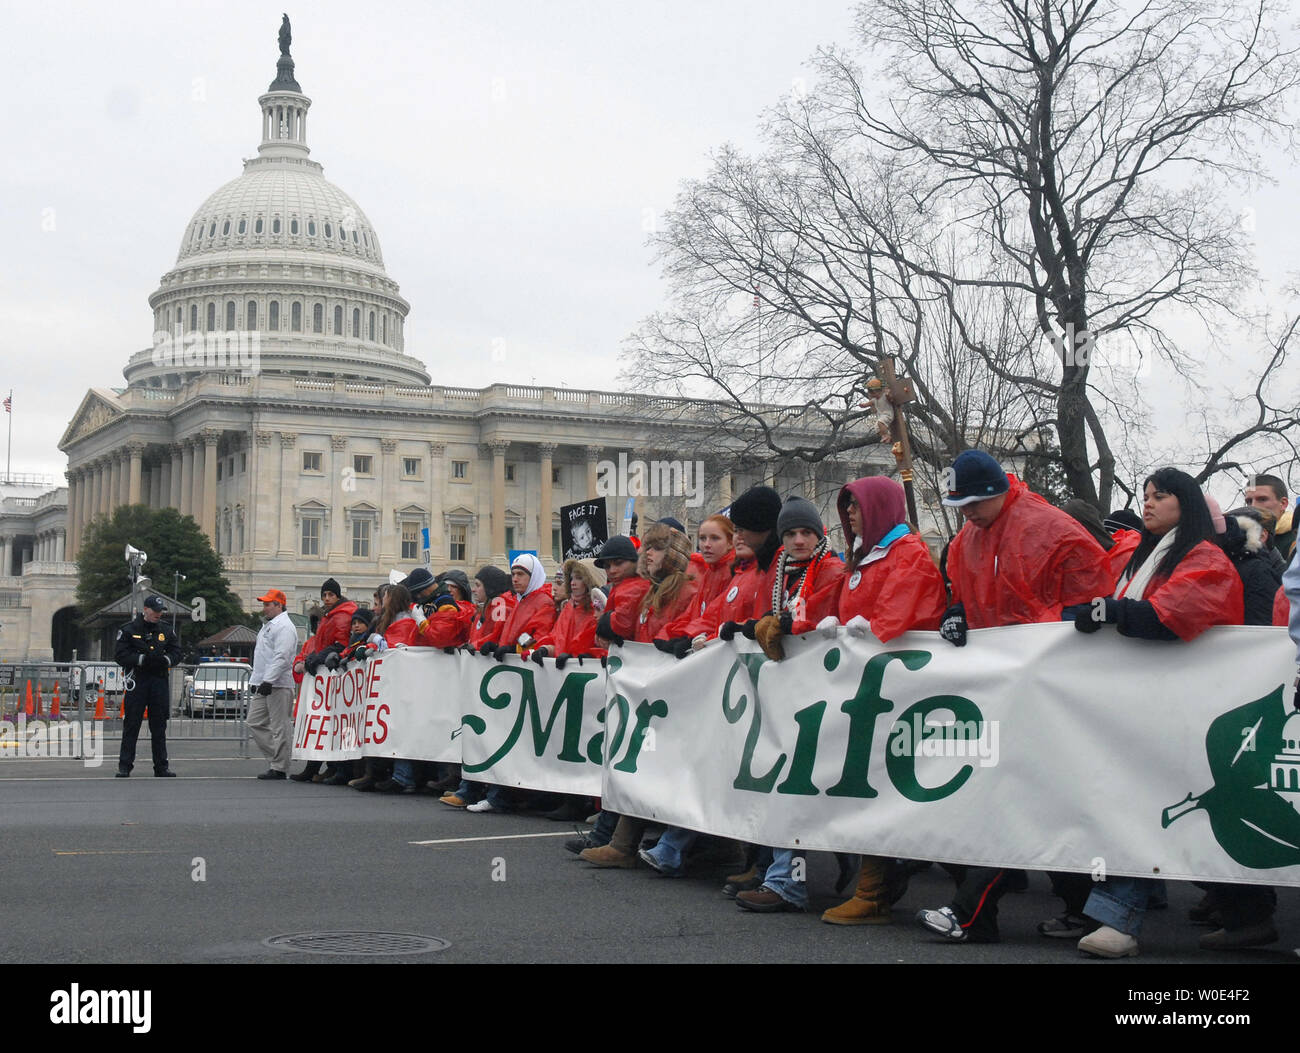 "Pro-life activists walk past the United States Capitol Building as they take part in the ""March for Life"" anti-abortion rally in Washington on January 22, 2008. The demonstration marked the 35th anniversary of the Supreme Court's 1973 decision in Roe vs Wade making abortions legal. (UPI Photo/Kevin Dietsch) Stock Photo"